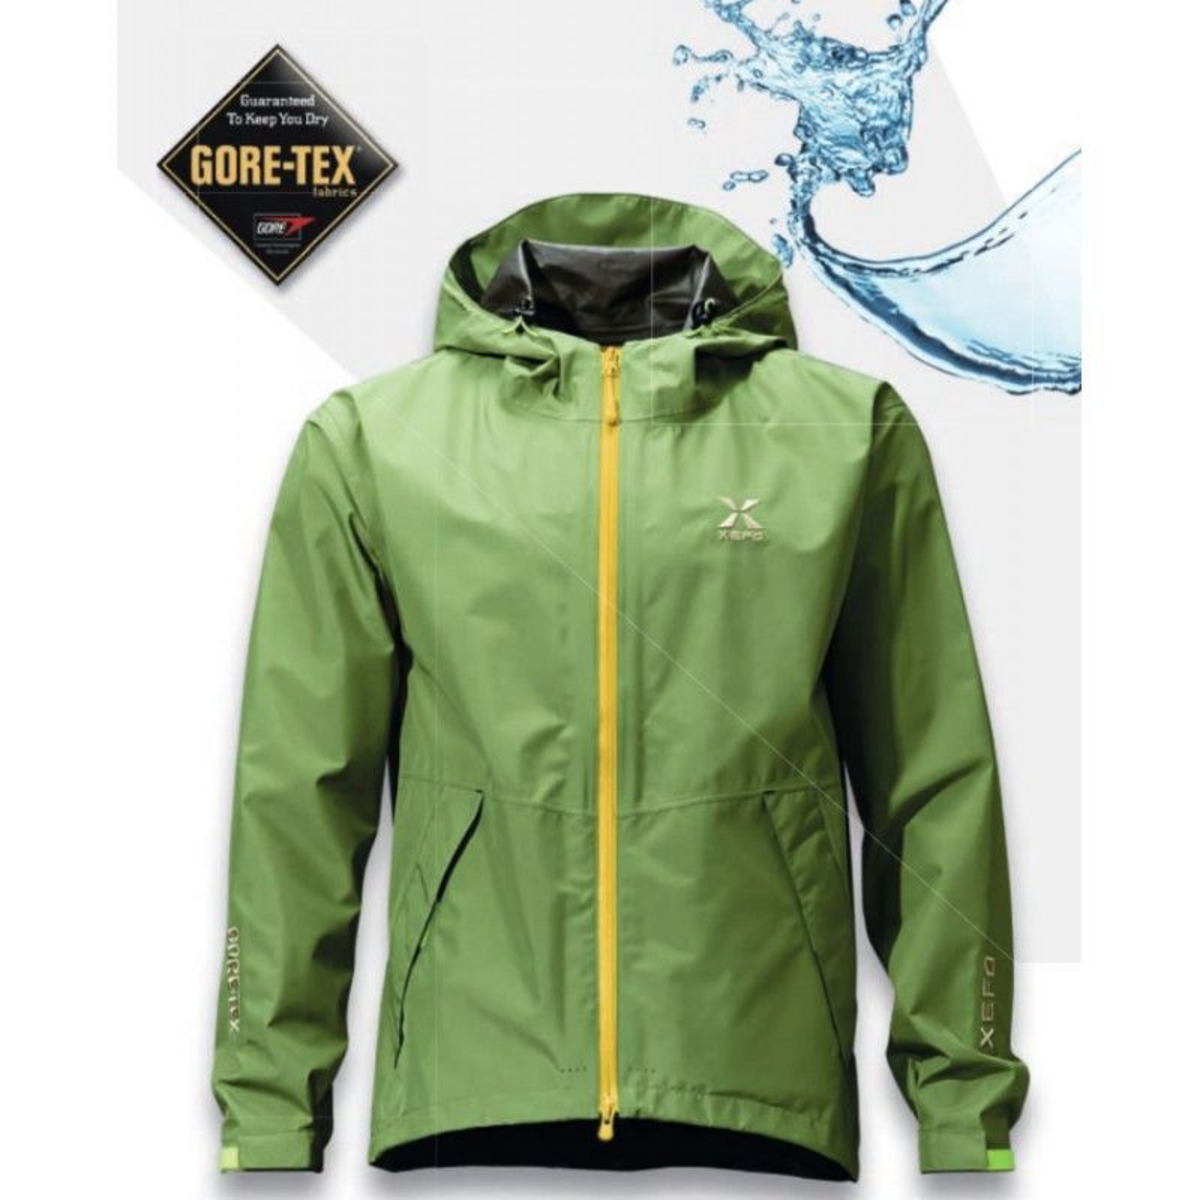 Shimano Giacca Xefo Gore-Tex Basic - L - Forest Green